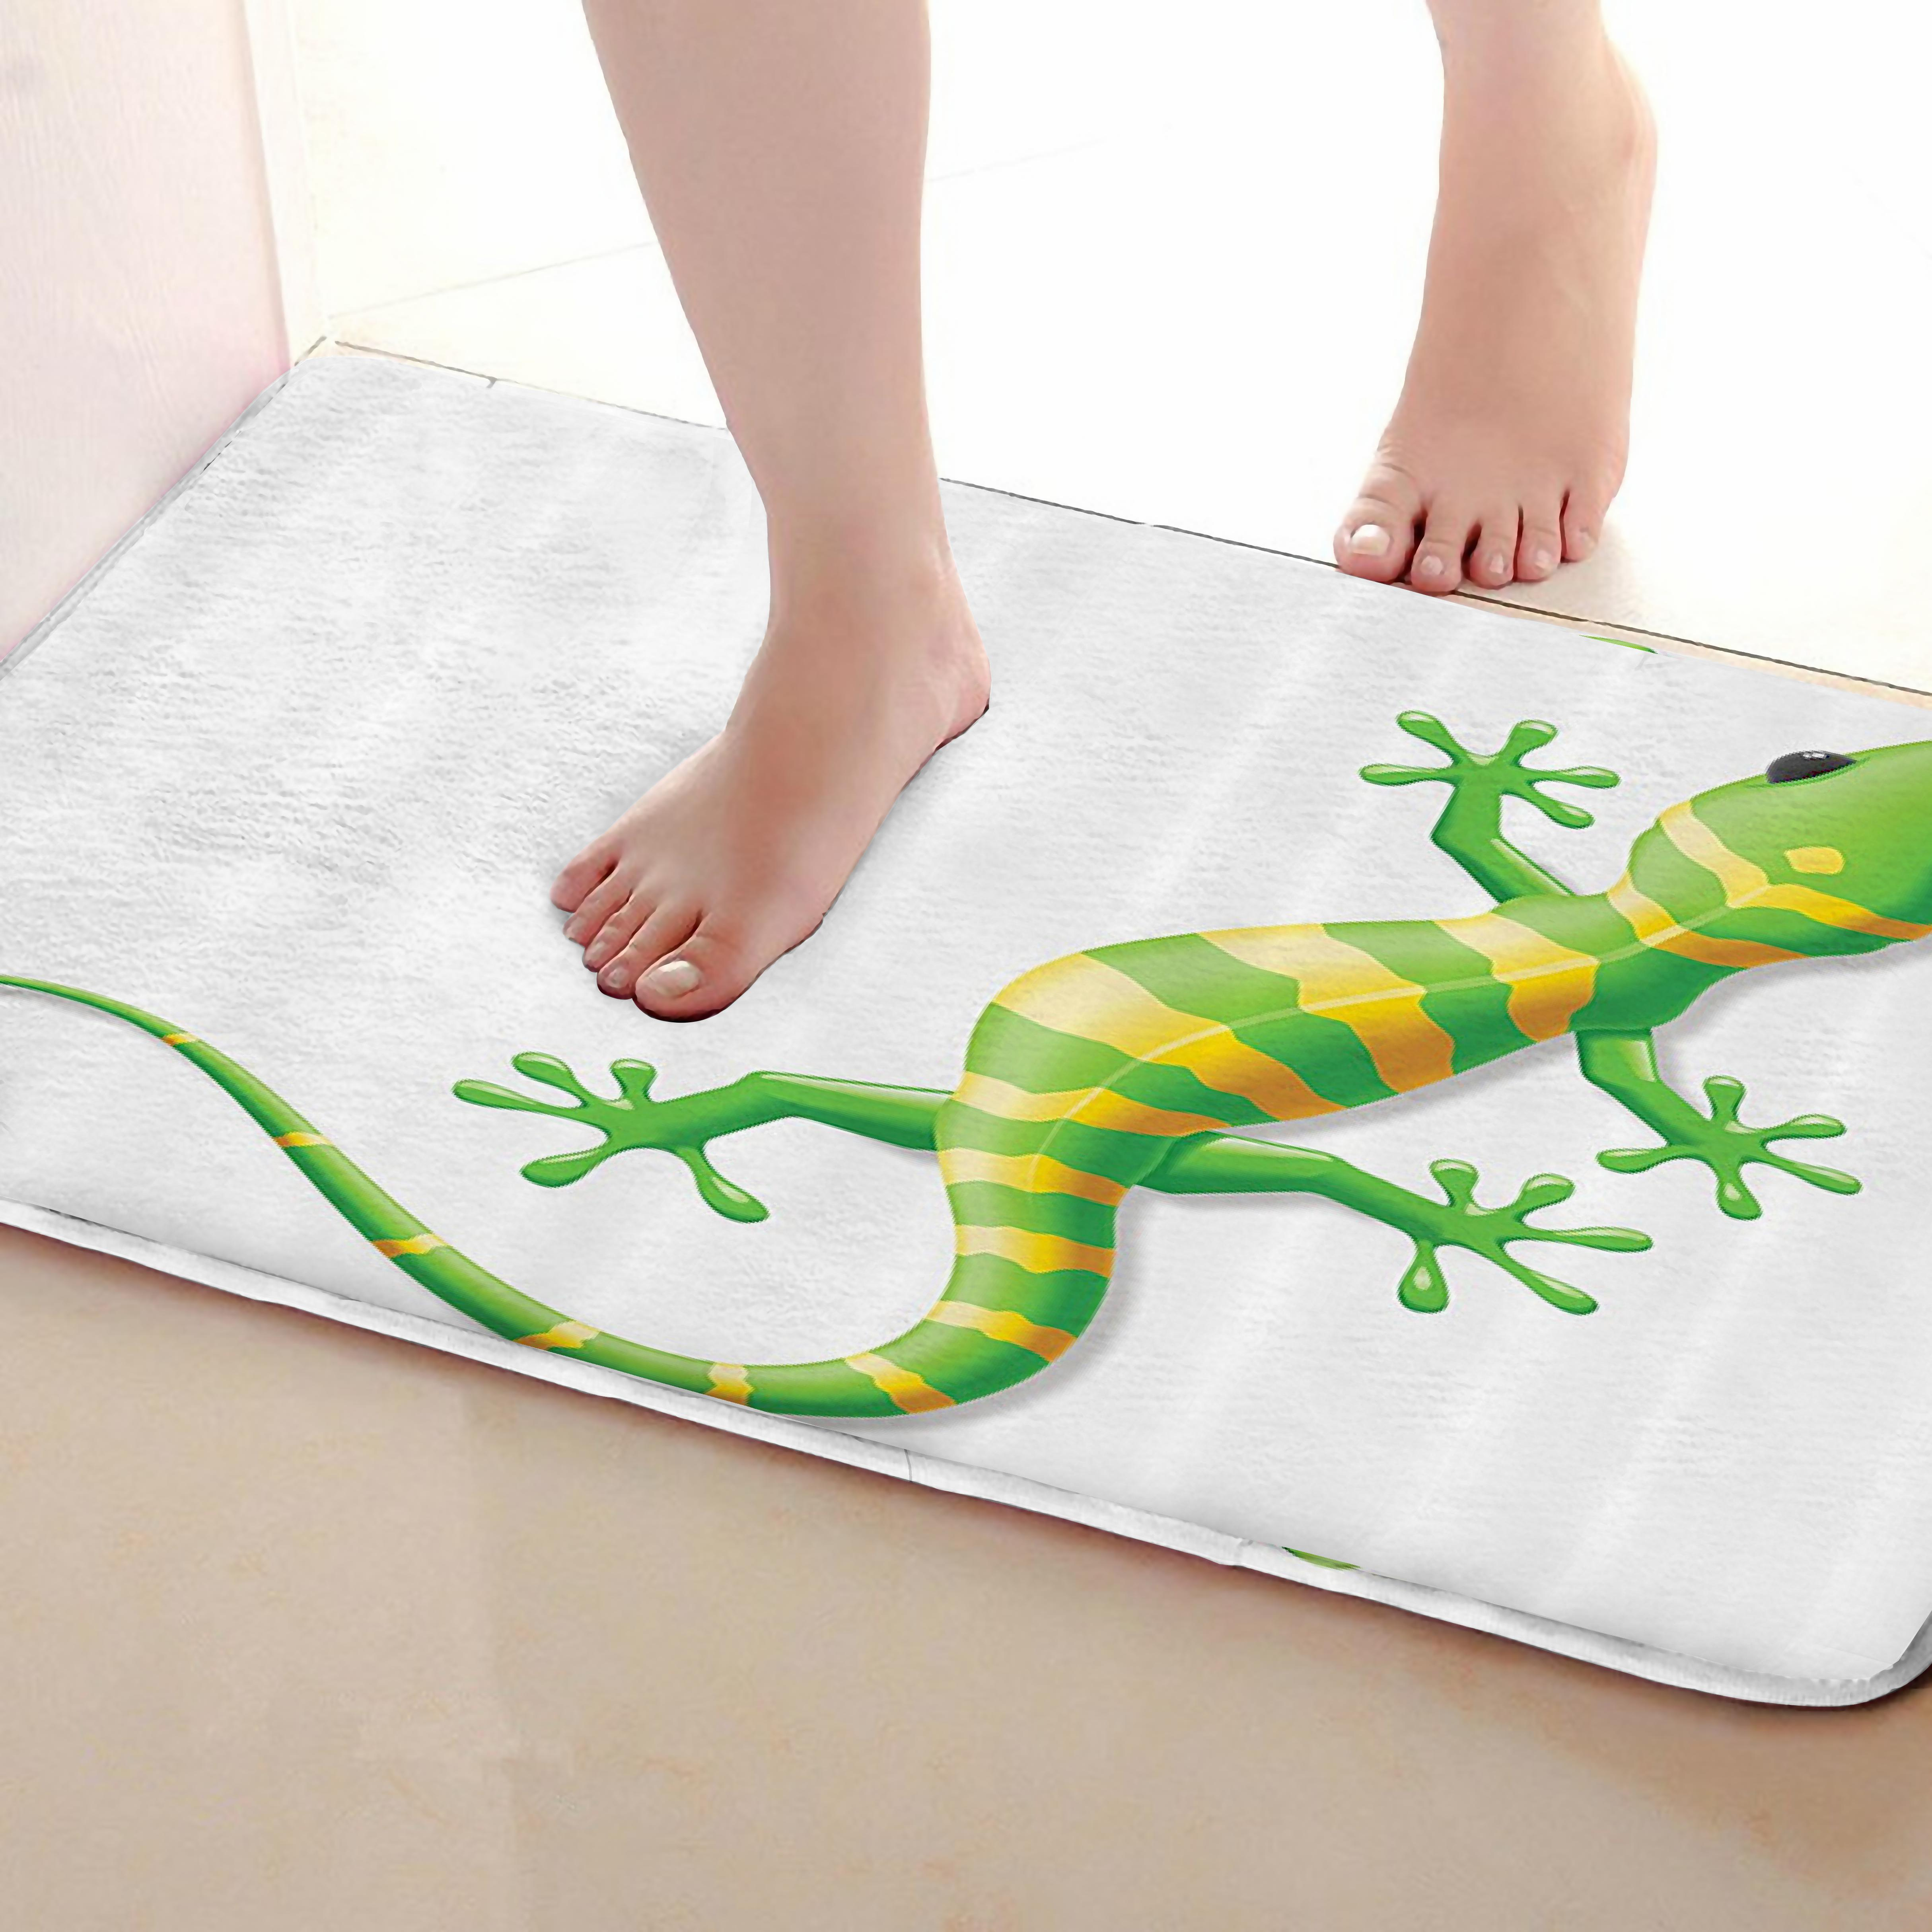 Chameleon Style Bathroom Mat,Funny Anti Skid Bath Mat,Shower Curtains Accessories,Matching Your Shower Curtain